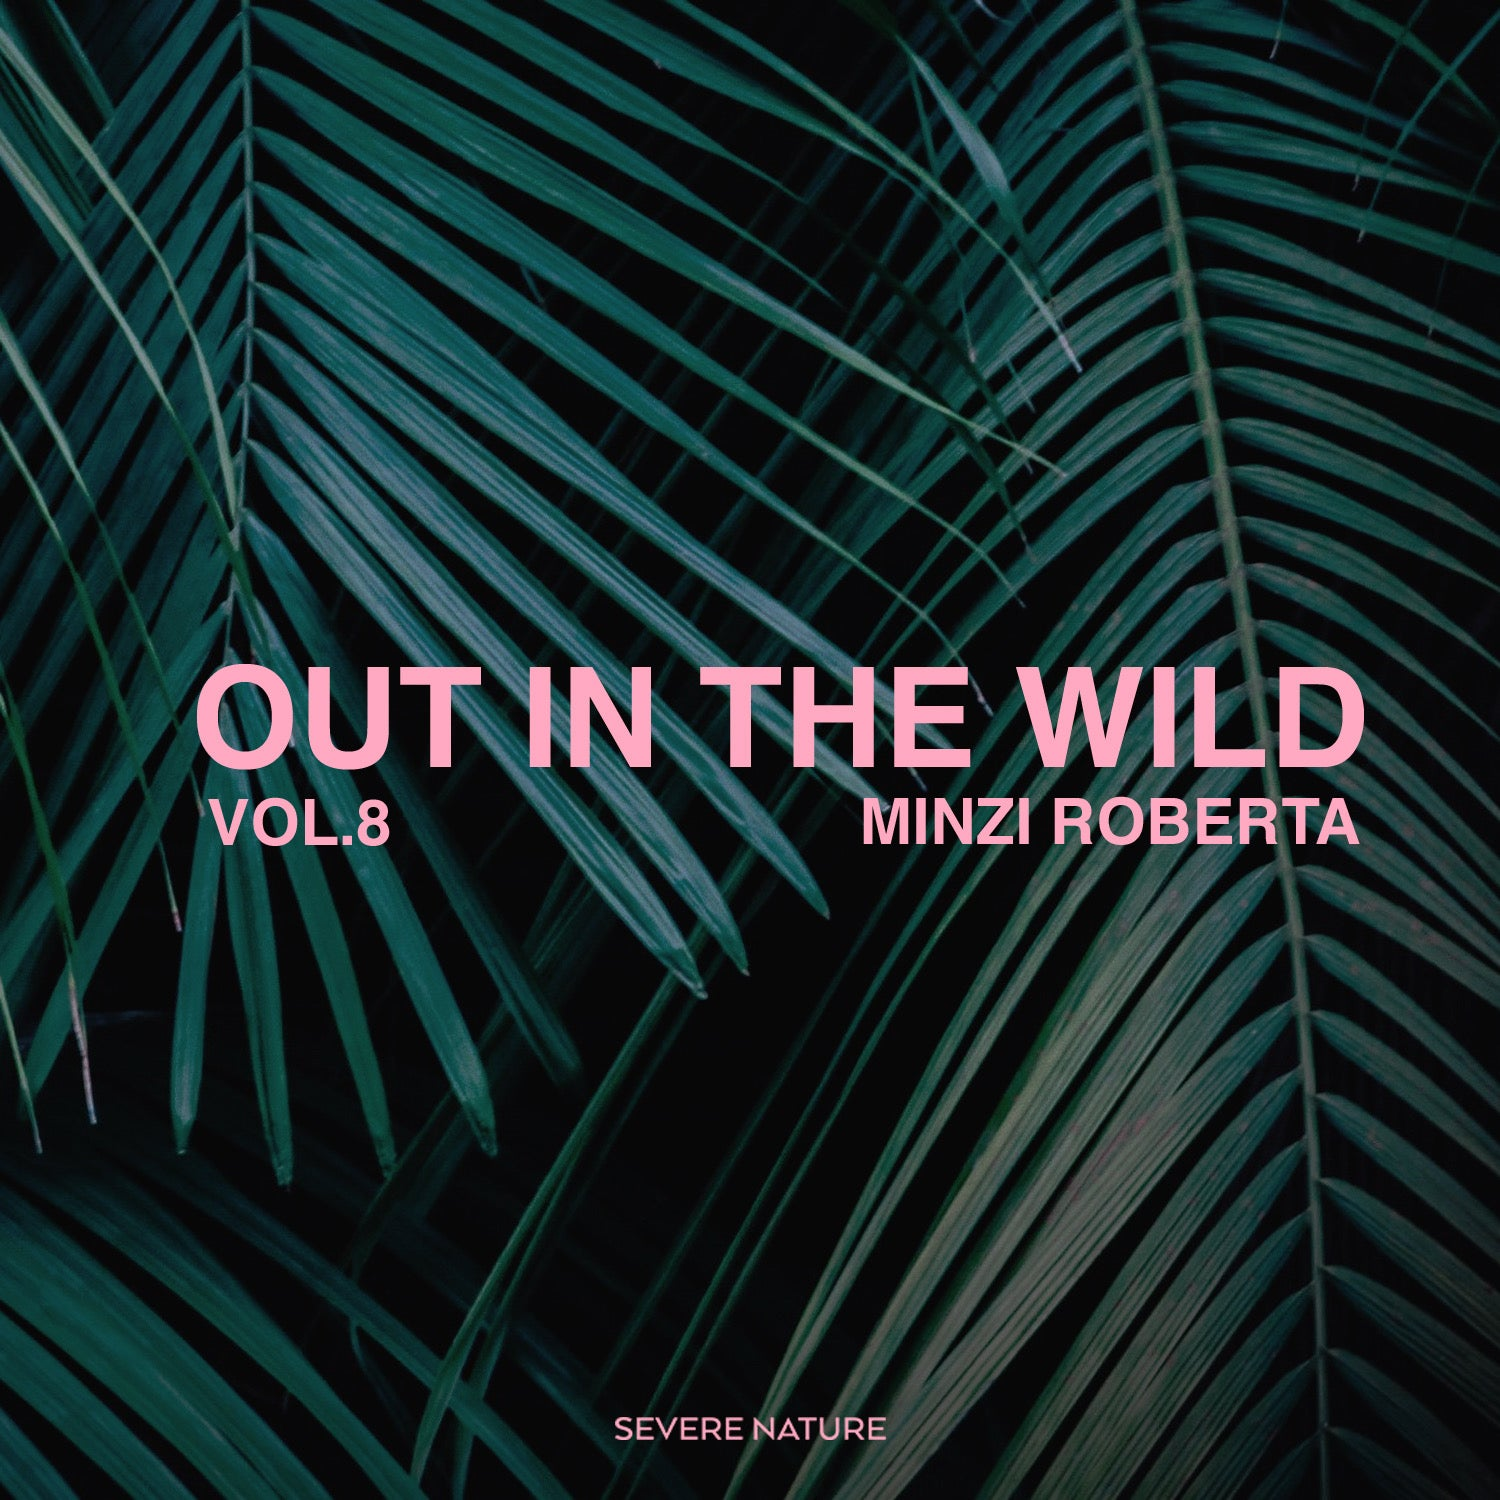 Out In The Wild Vol. 8 Curated by Minzi Roberta